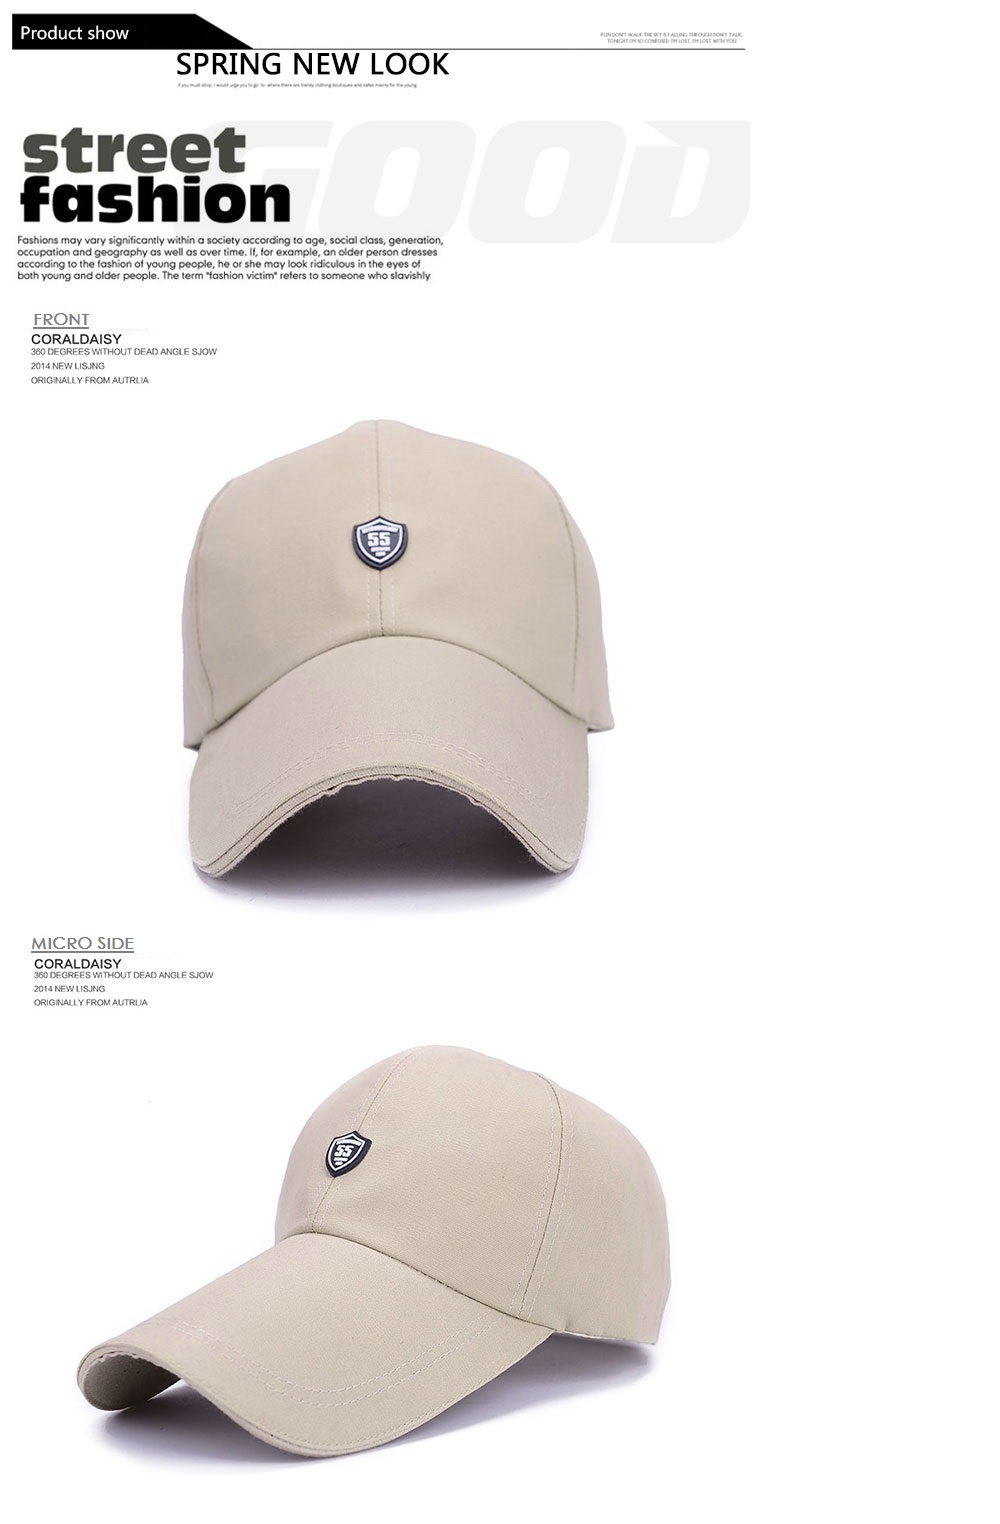 a059f77b6 ZHAXIN Long Brim Canvas Visor Hat for Man and Women